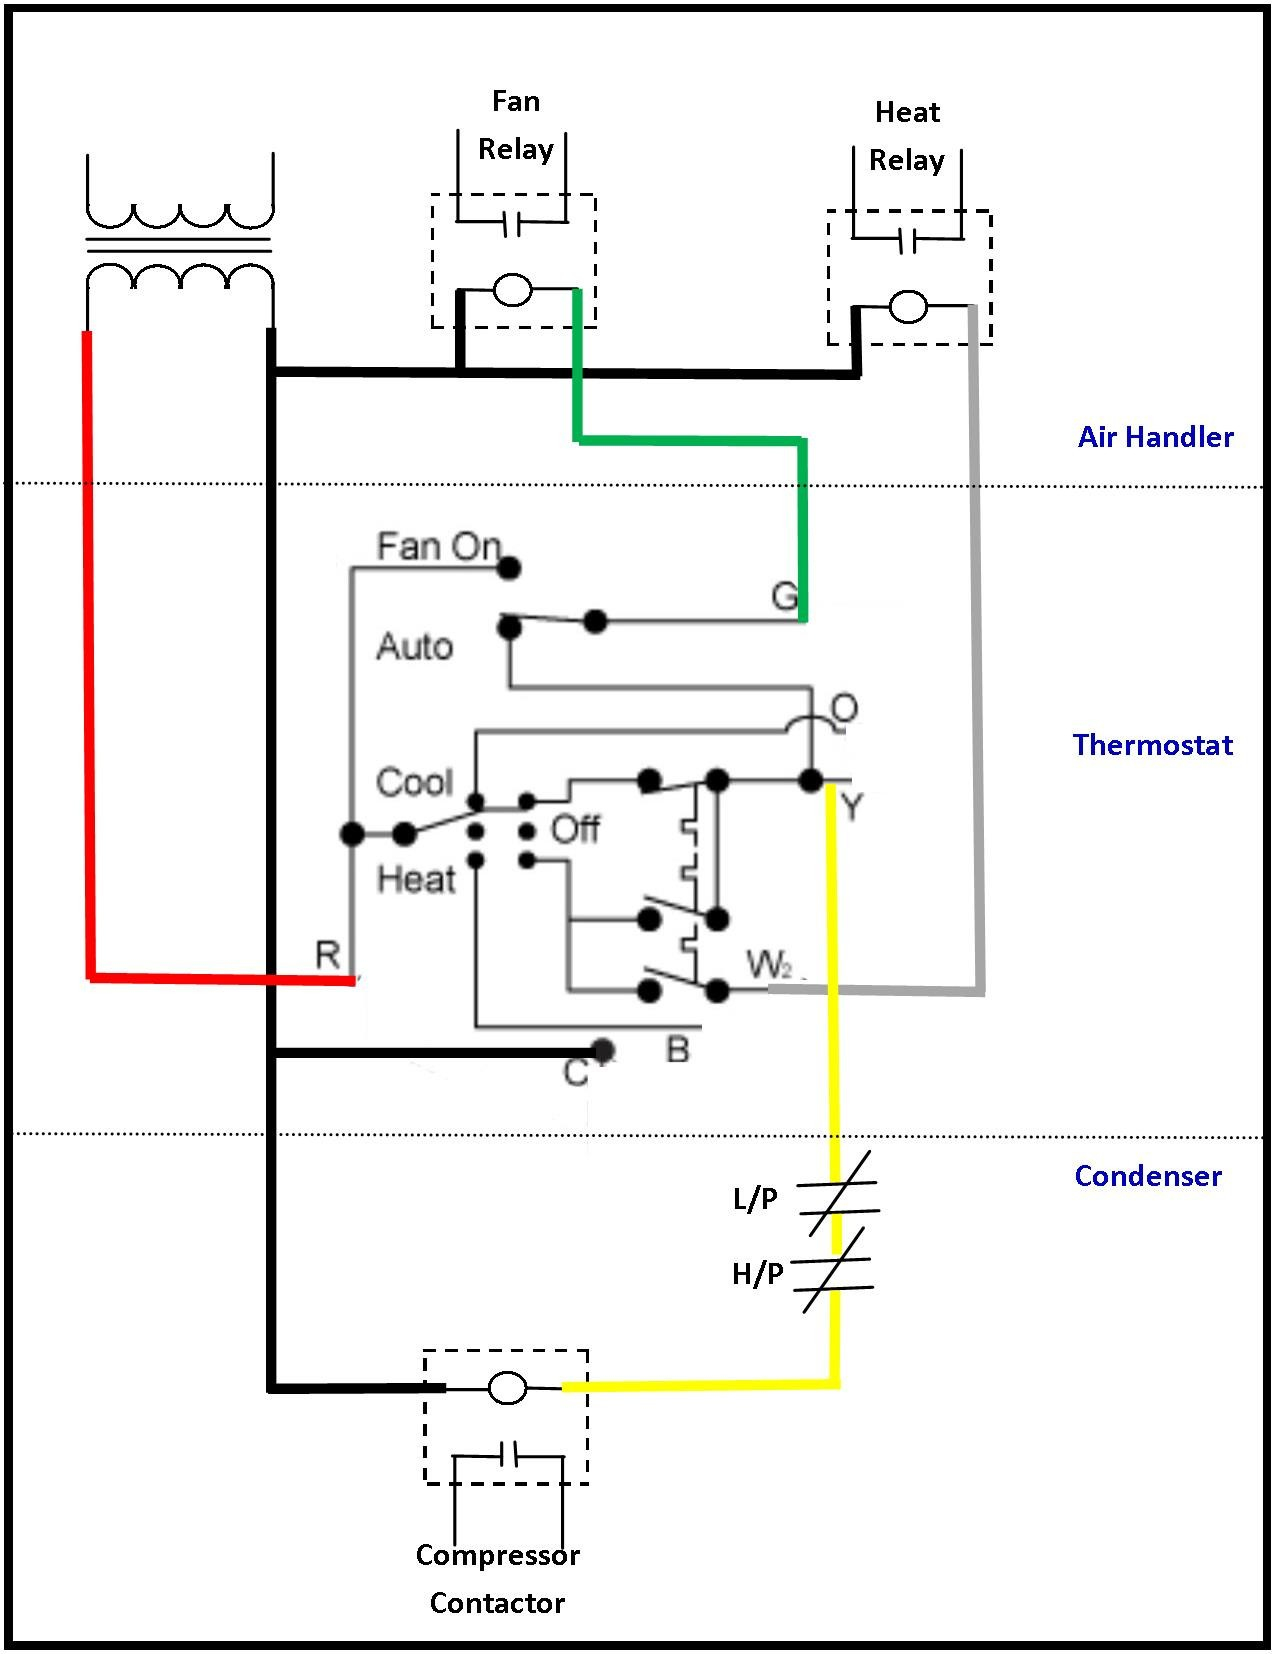 Rheem Heat Pump Thermostat Wiring Diagram from wholefoodsonabudget.com